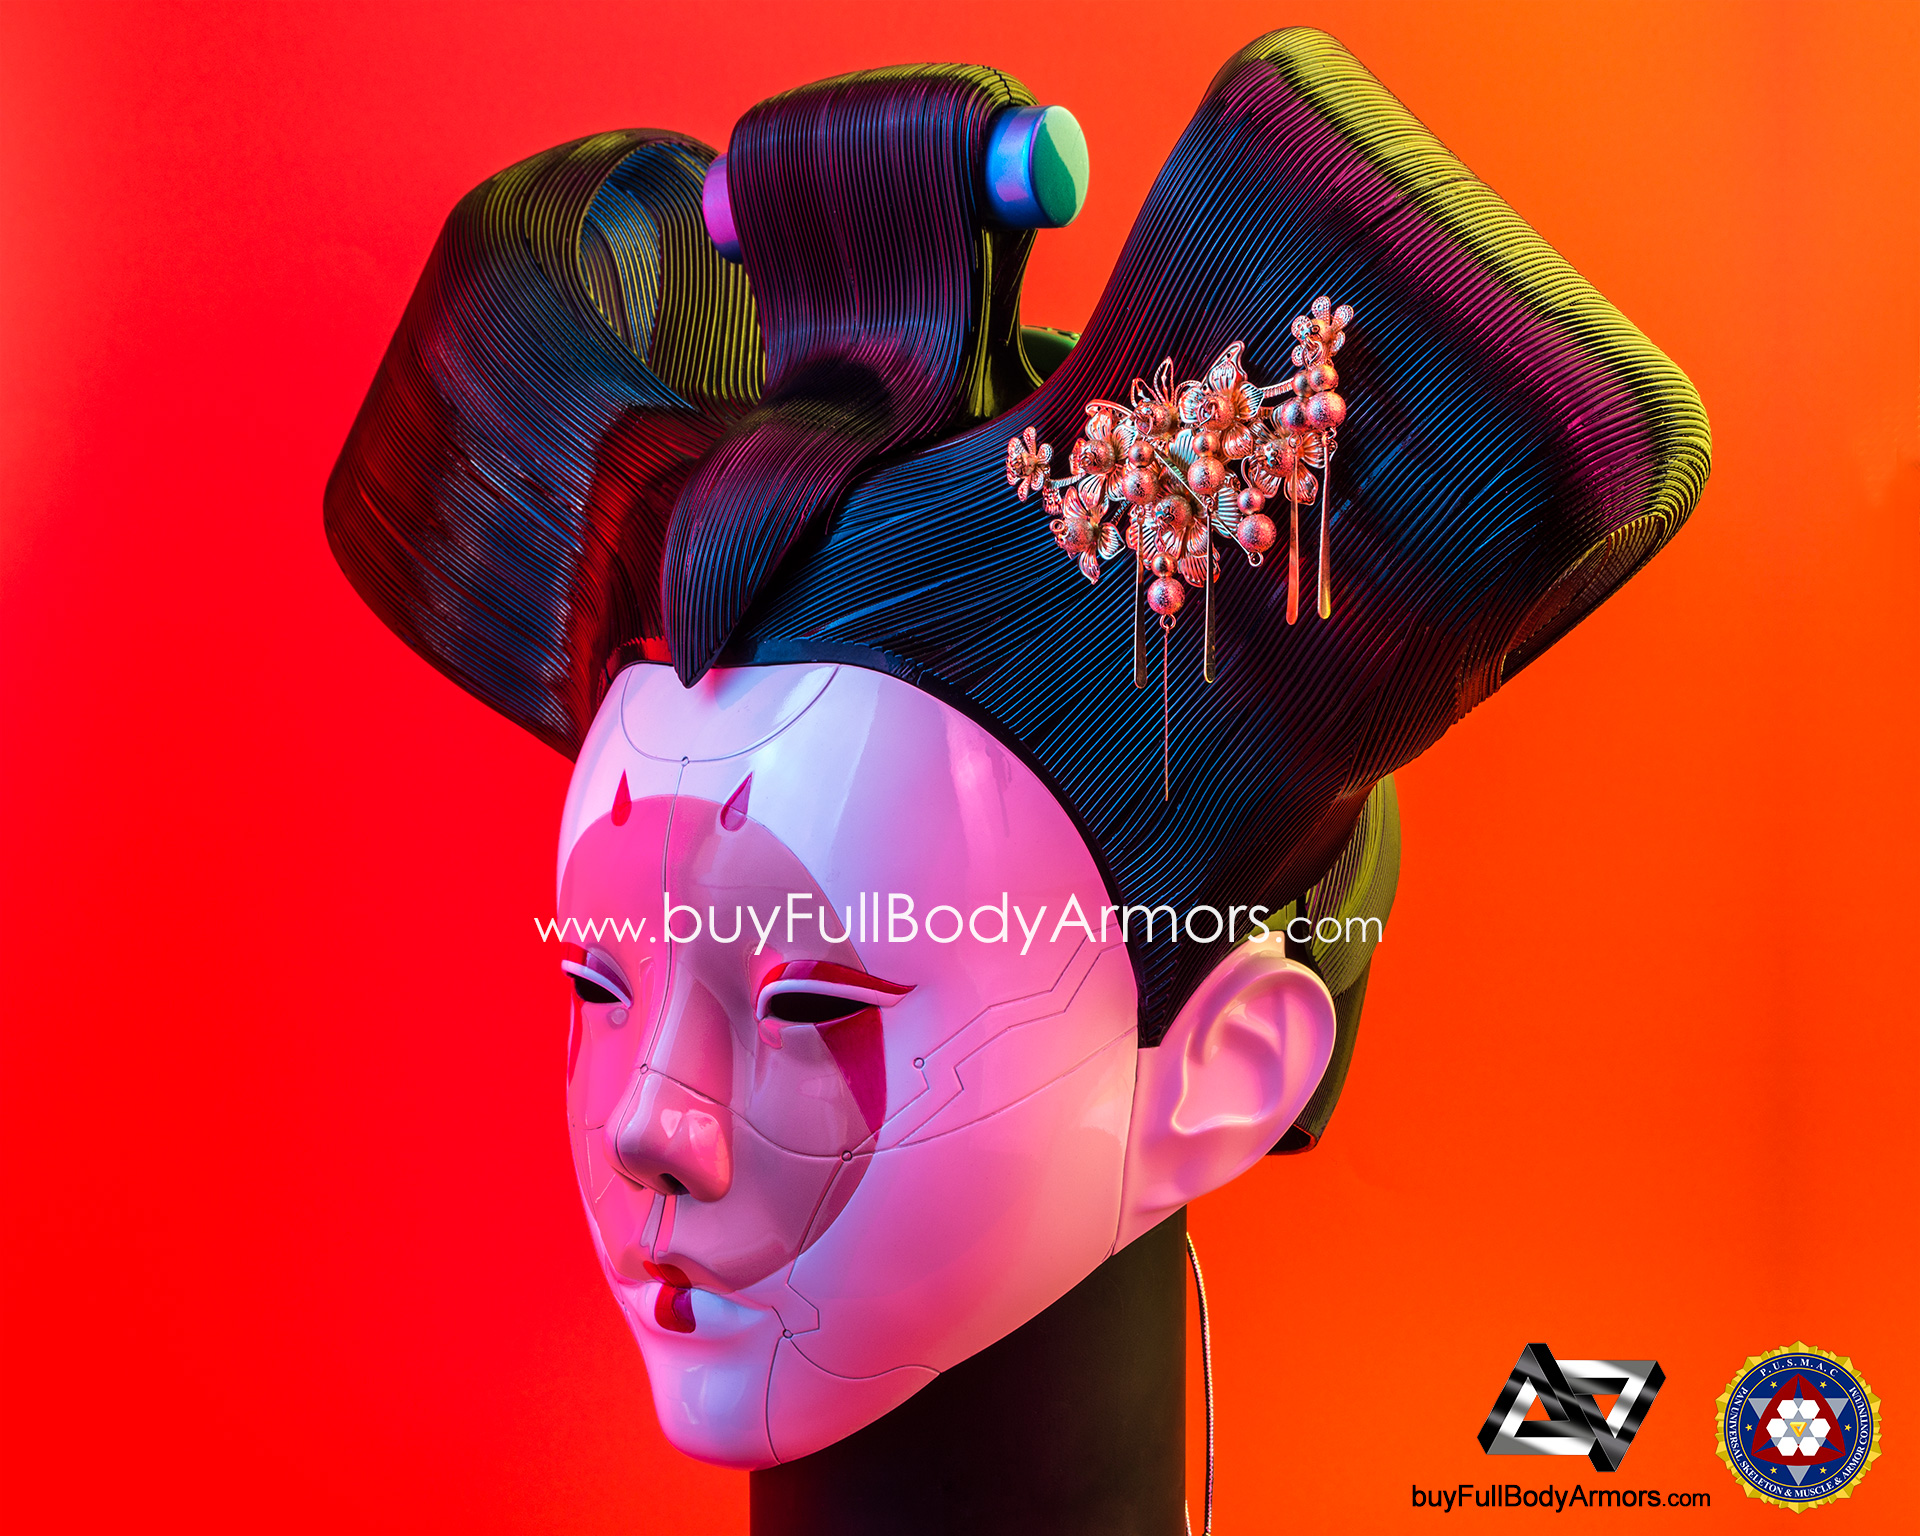 Wearable Ghost in the Shell Robotic Geisha Head / Helmet DSLR Photos side 2